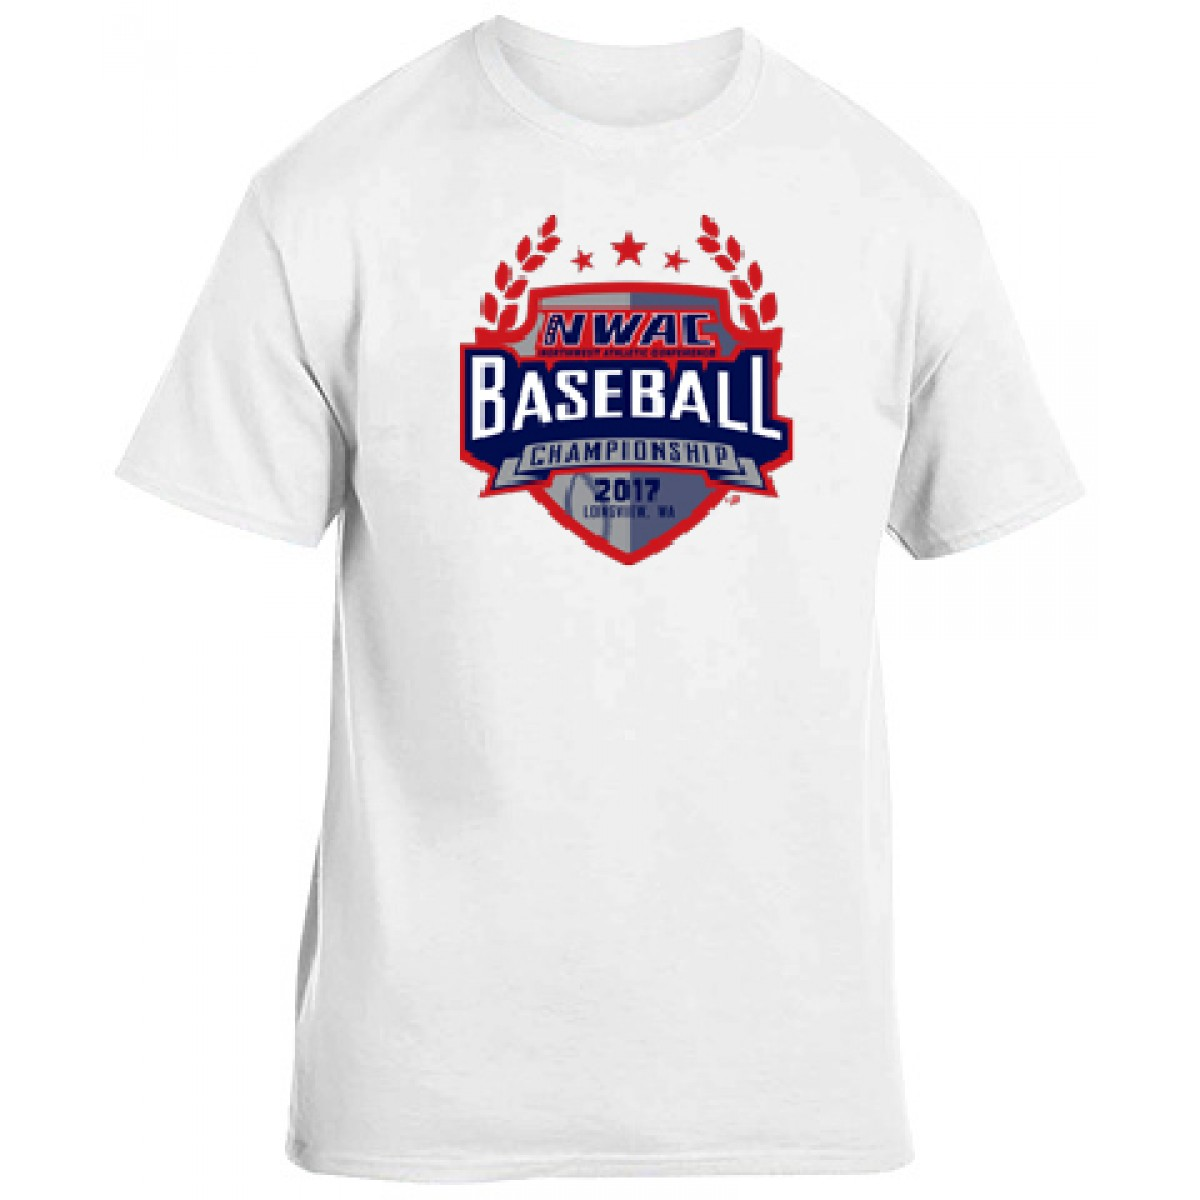 National Guard NWAC Baseball T-shirt-White-M